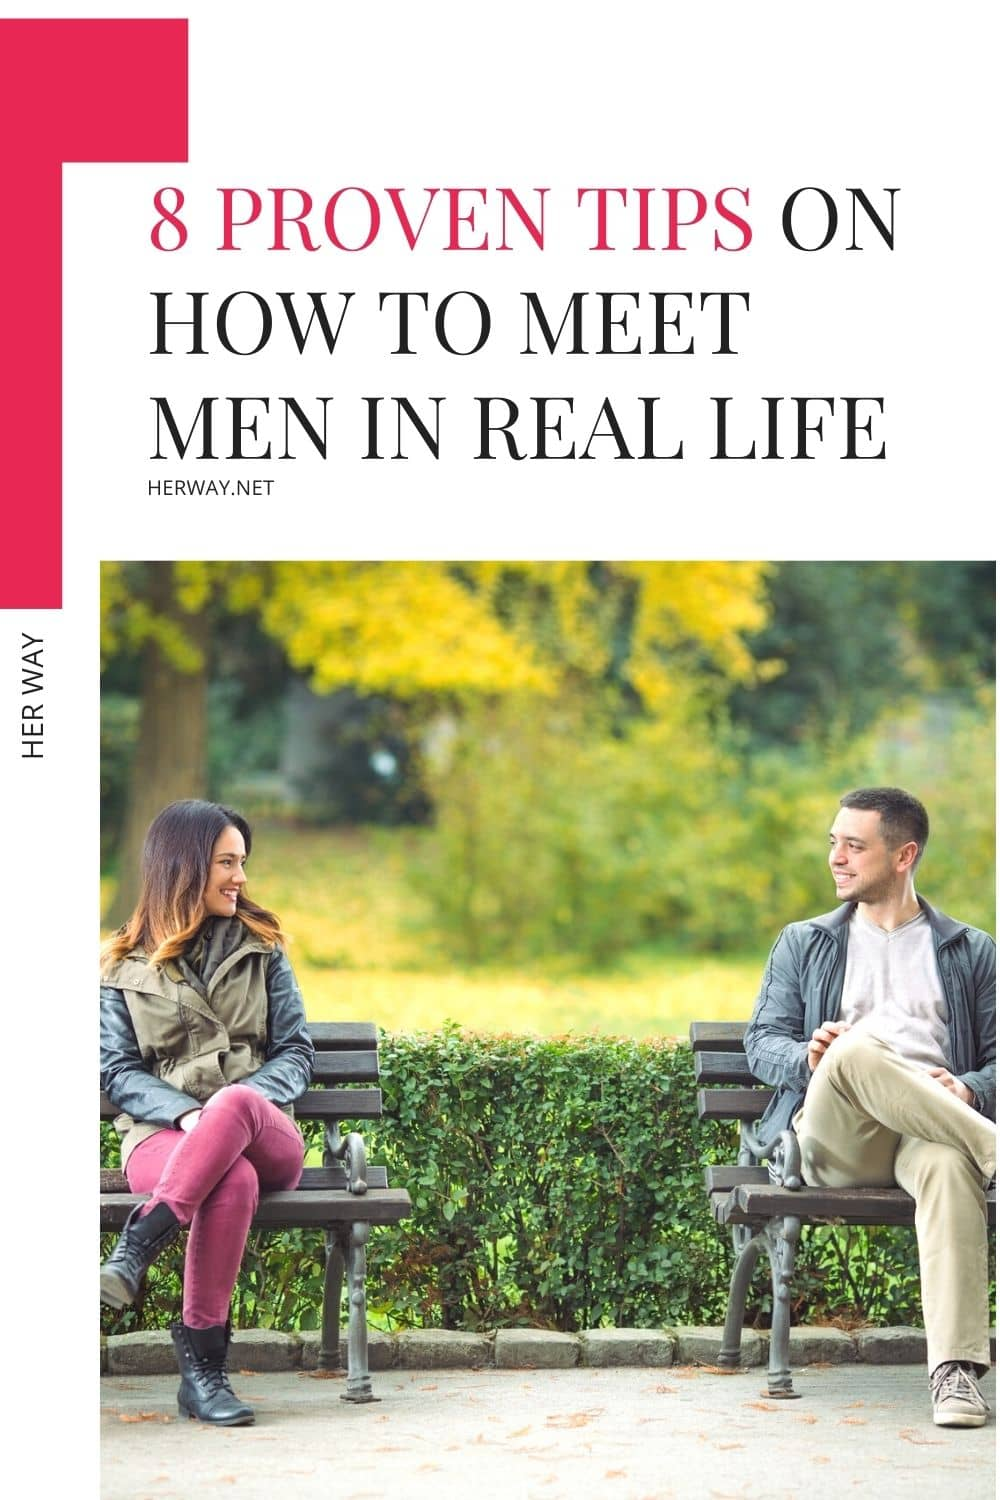 8 Proven Tips On How To Meet Men In Real Life